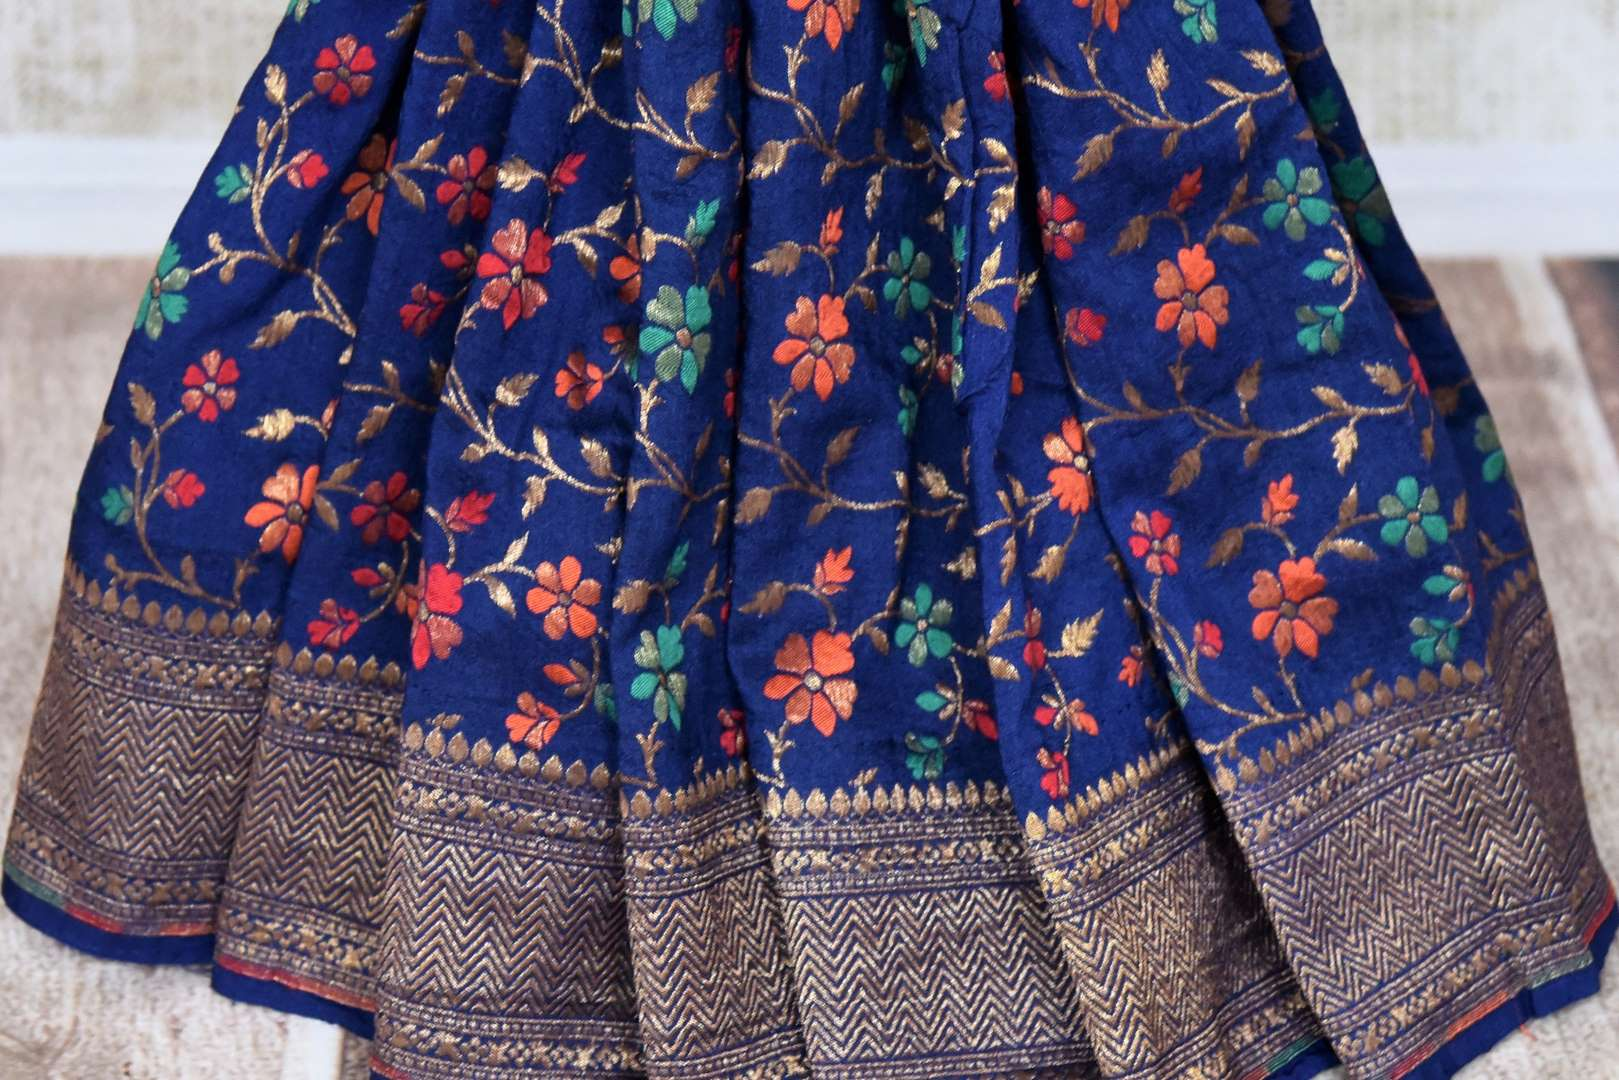 Buy dark blue muga Benarasi saree online in USA with minakari zari floral jaal. Shine bright on special occasions with traditional Indian sarees, Banarasi sarees, pure silk sarees in rich colors and designs from Pure Elegance Indian fashion store in USA.-pleats